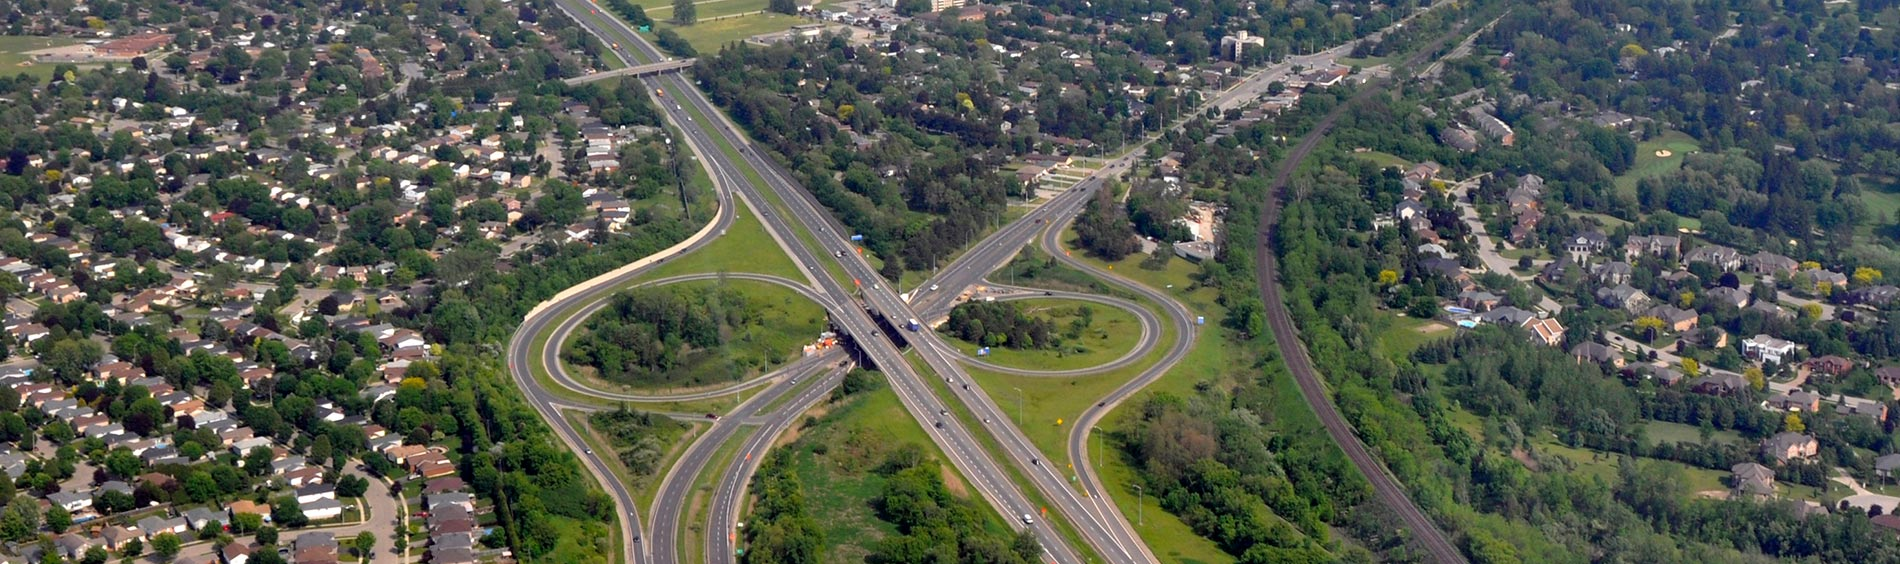 Aerial view of brantford highways